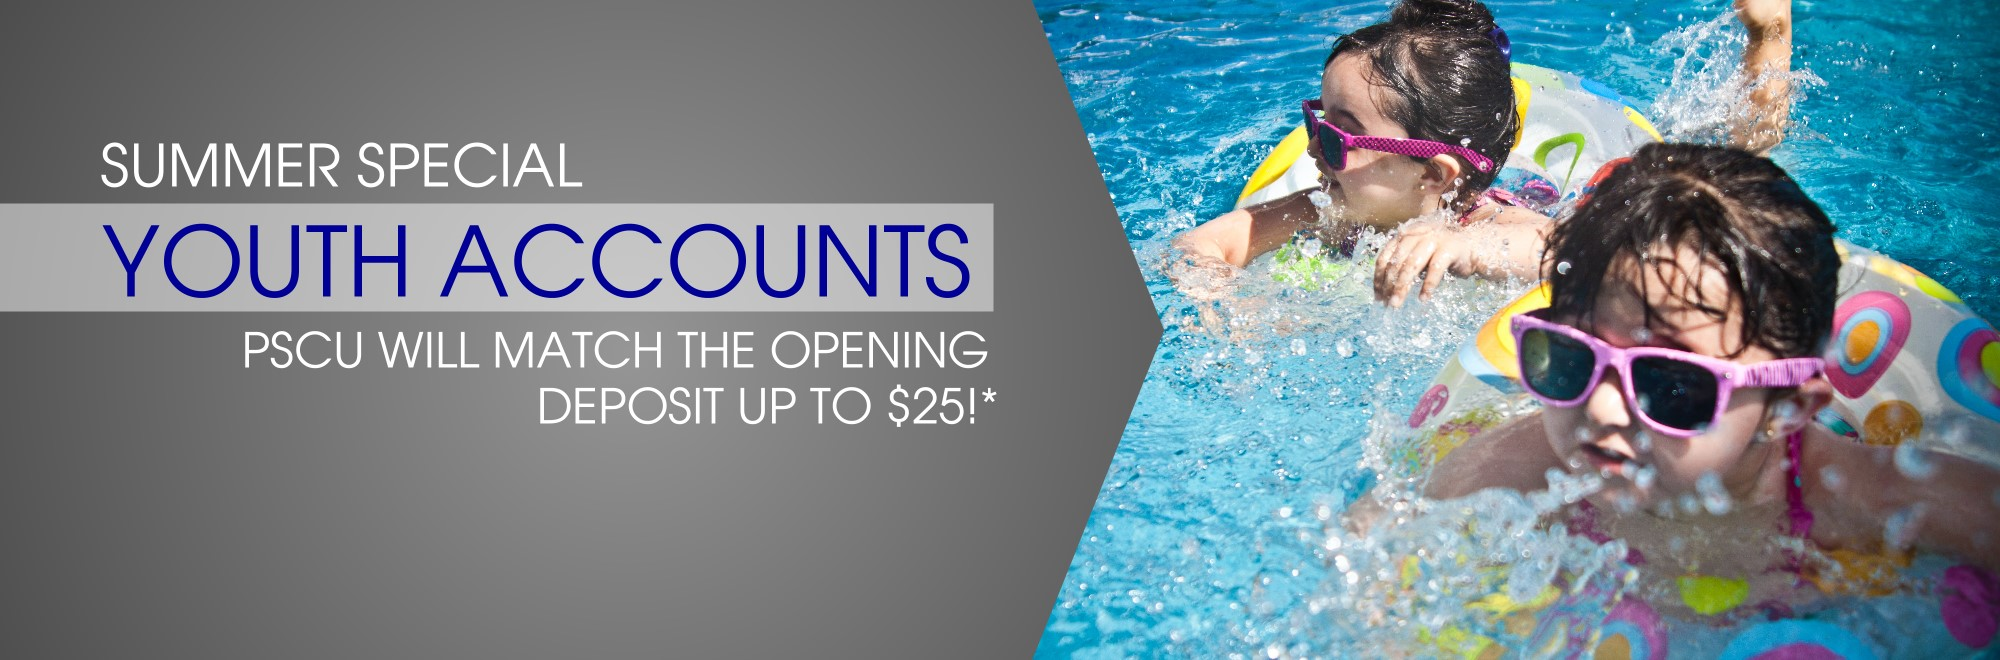 Summer Special Youth Accounts PSCU will match the opening deposit up to $25!